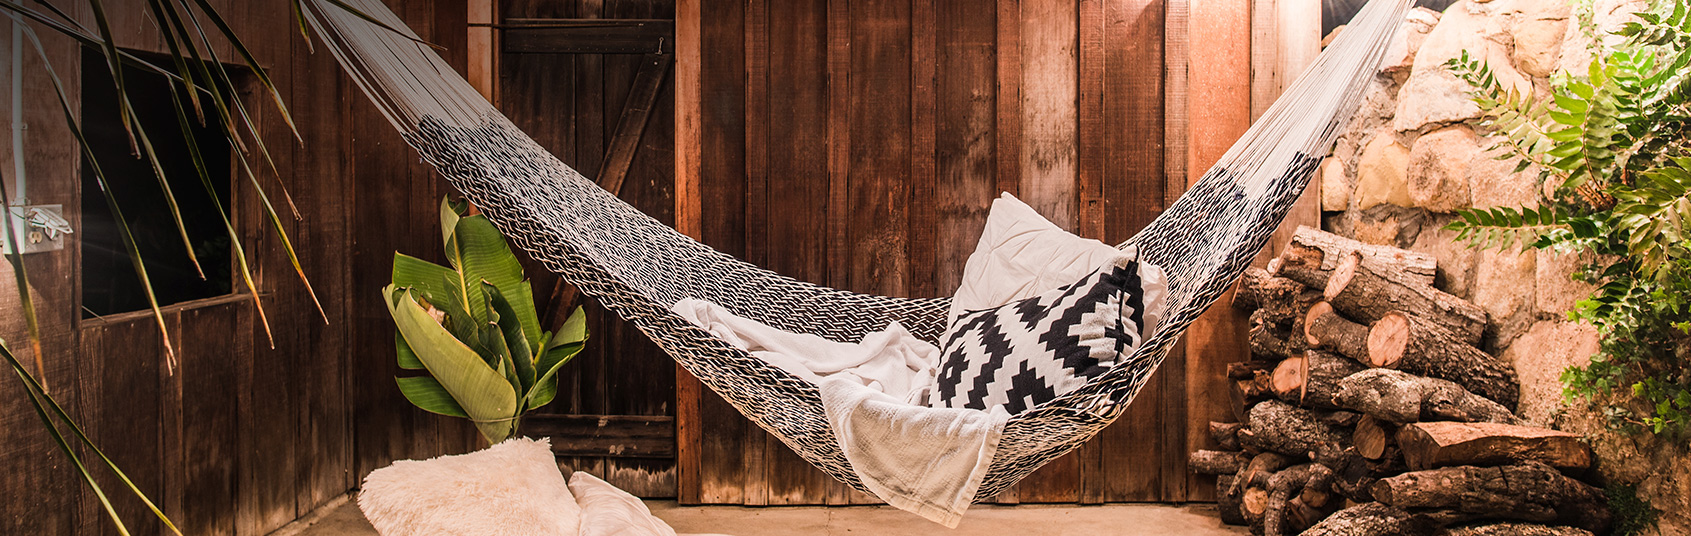 Awesome Hammocks